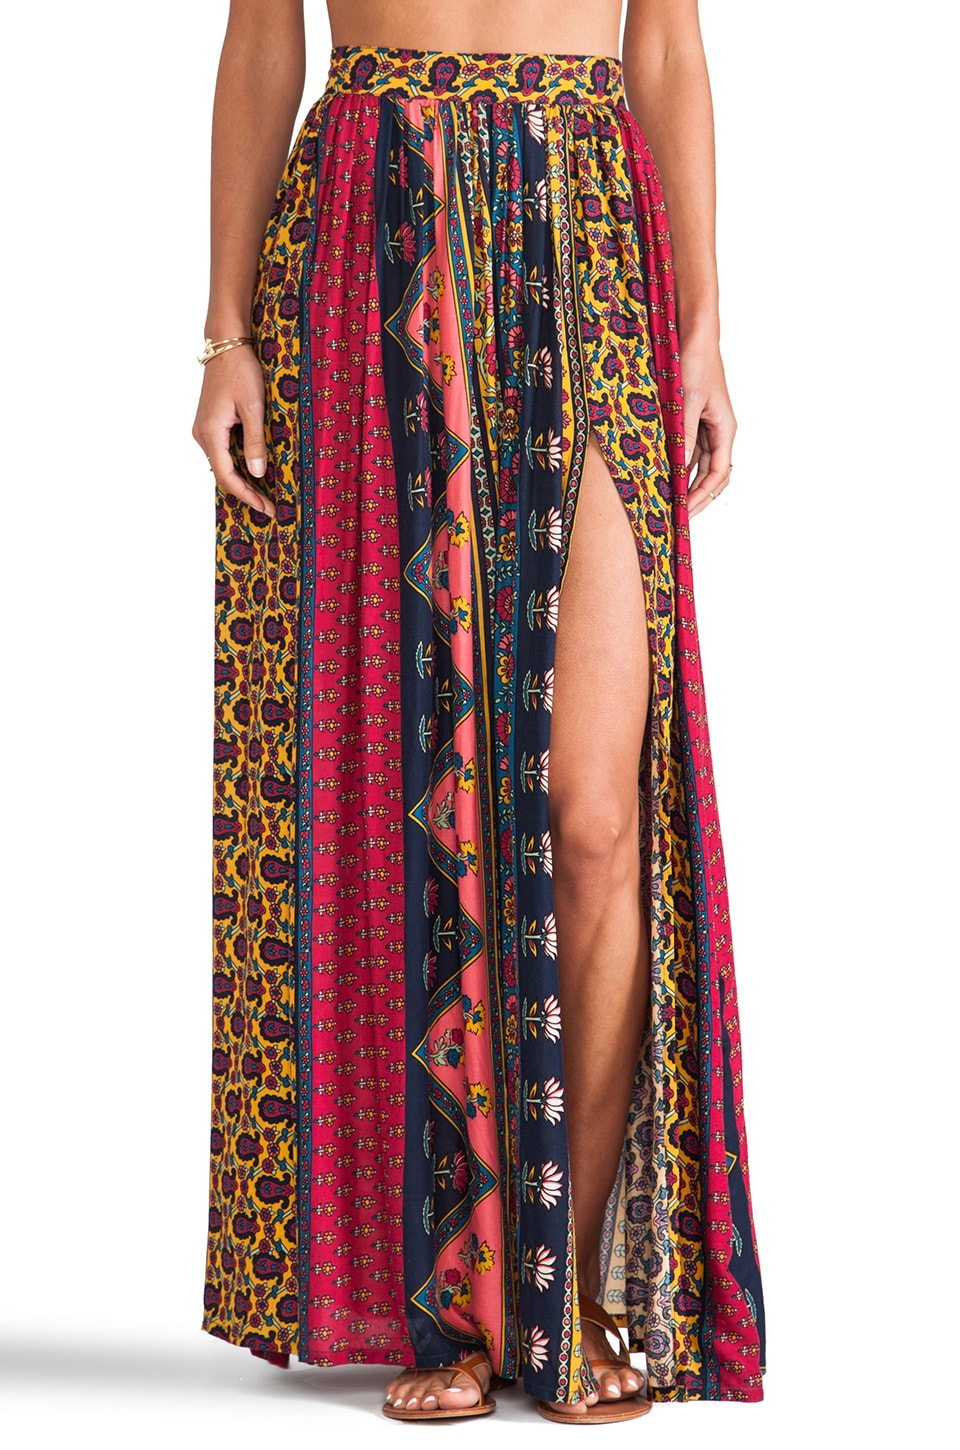 NOVELLA ROYALE Strange Melody Skirt in Red Ethnic Floral